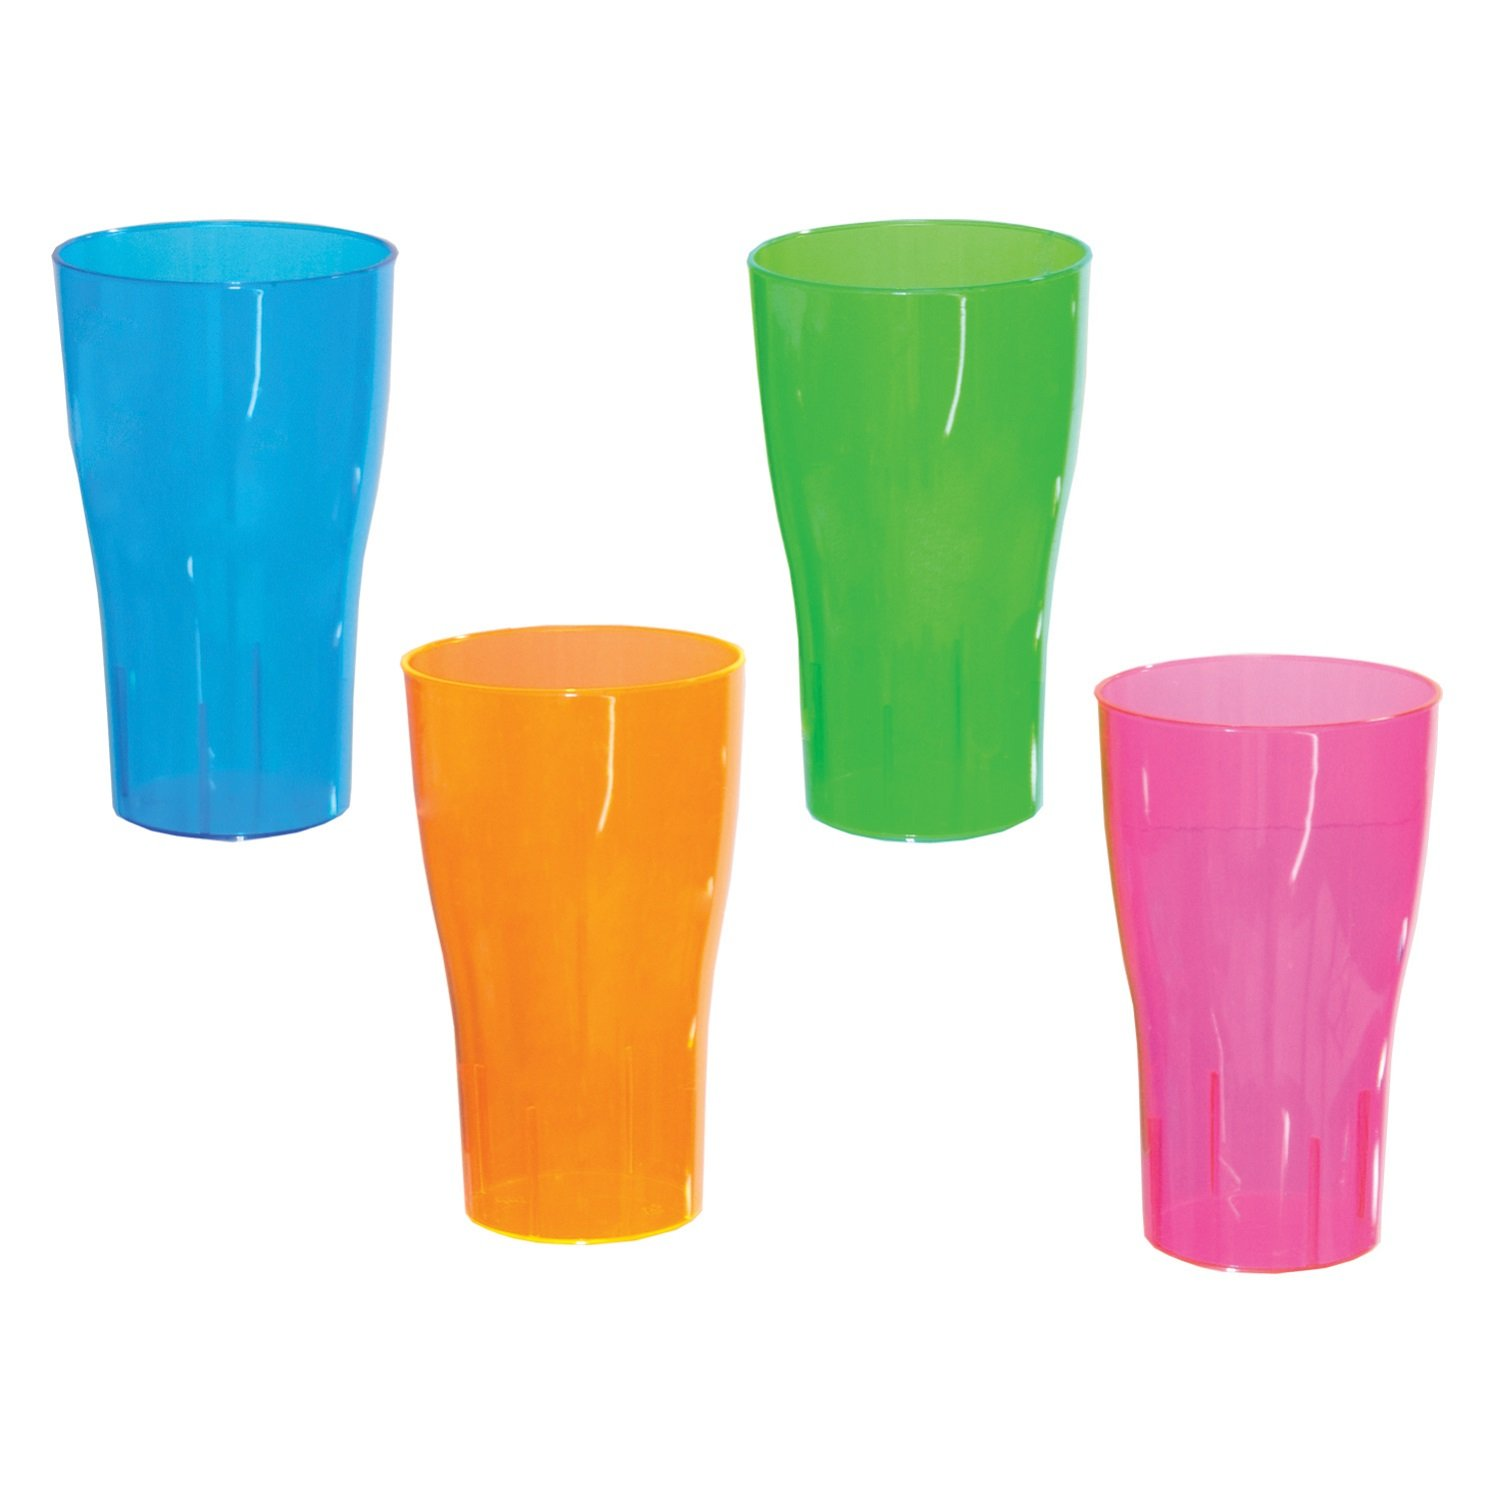 Party Essentials 10-Count Hard Plastic 16-Ounce Party Cup Pint Glasses, Assorted Neon